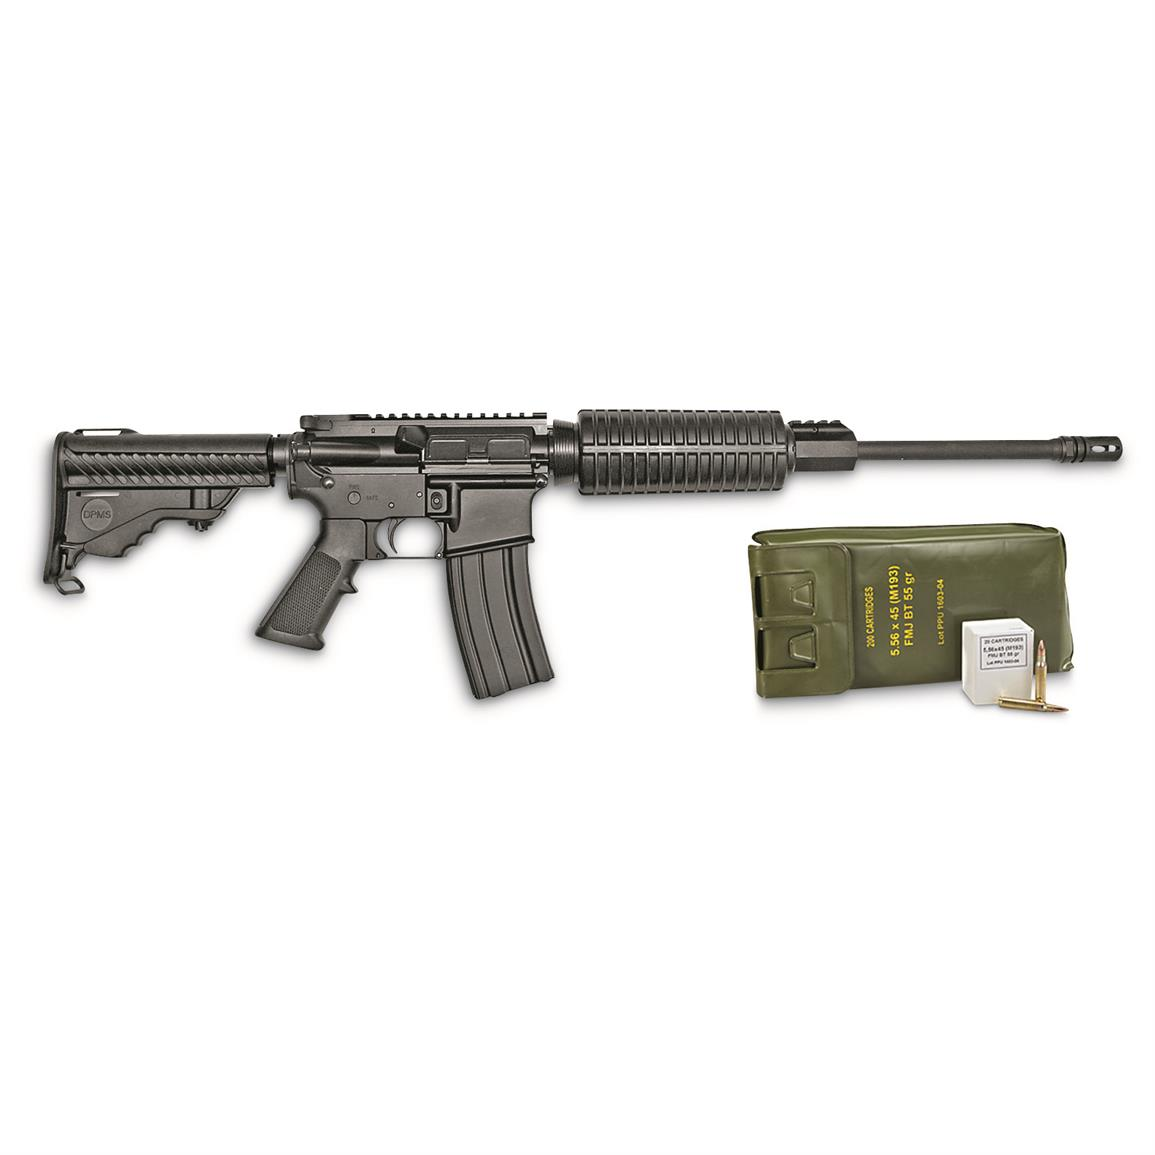 DPMS Panther Oracle, Semi-Automatic, 5.56x45mm, 30+1 Rounds with PMC Bronze 200-rd. Ammo Battle Pack